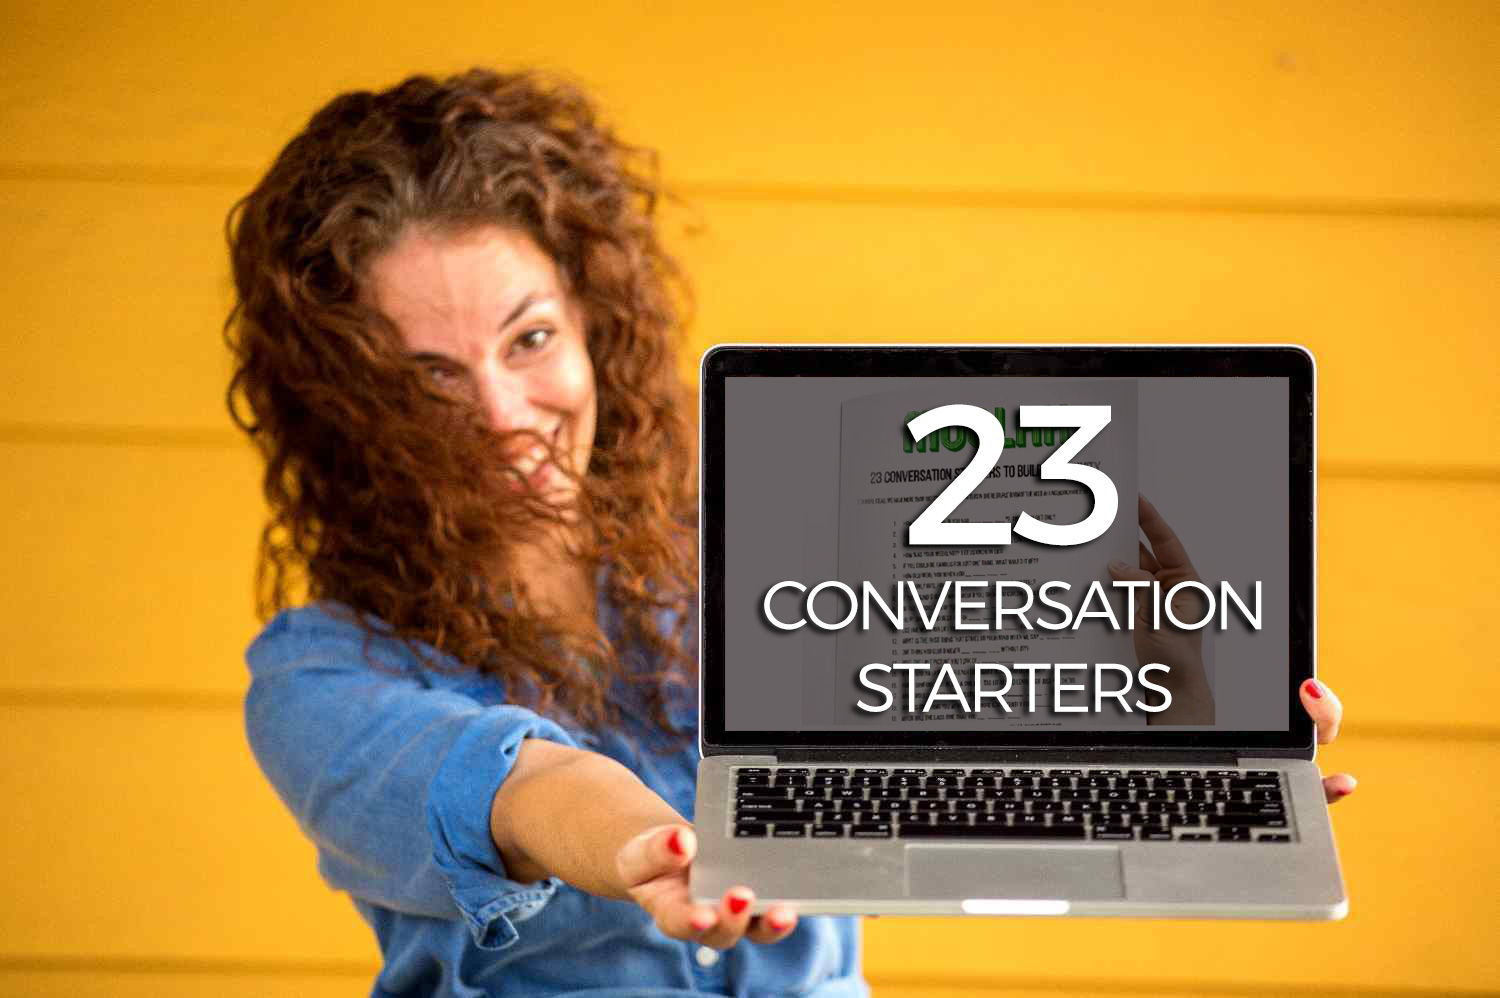 Conversation Starters for Facebook Audience